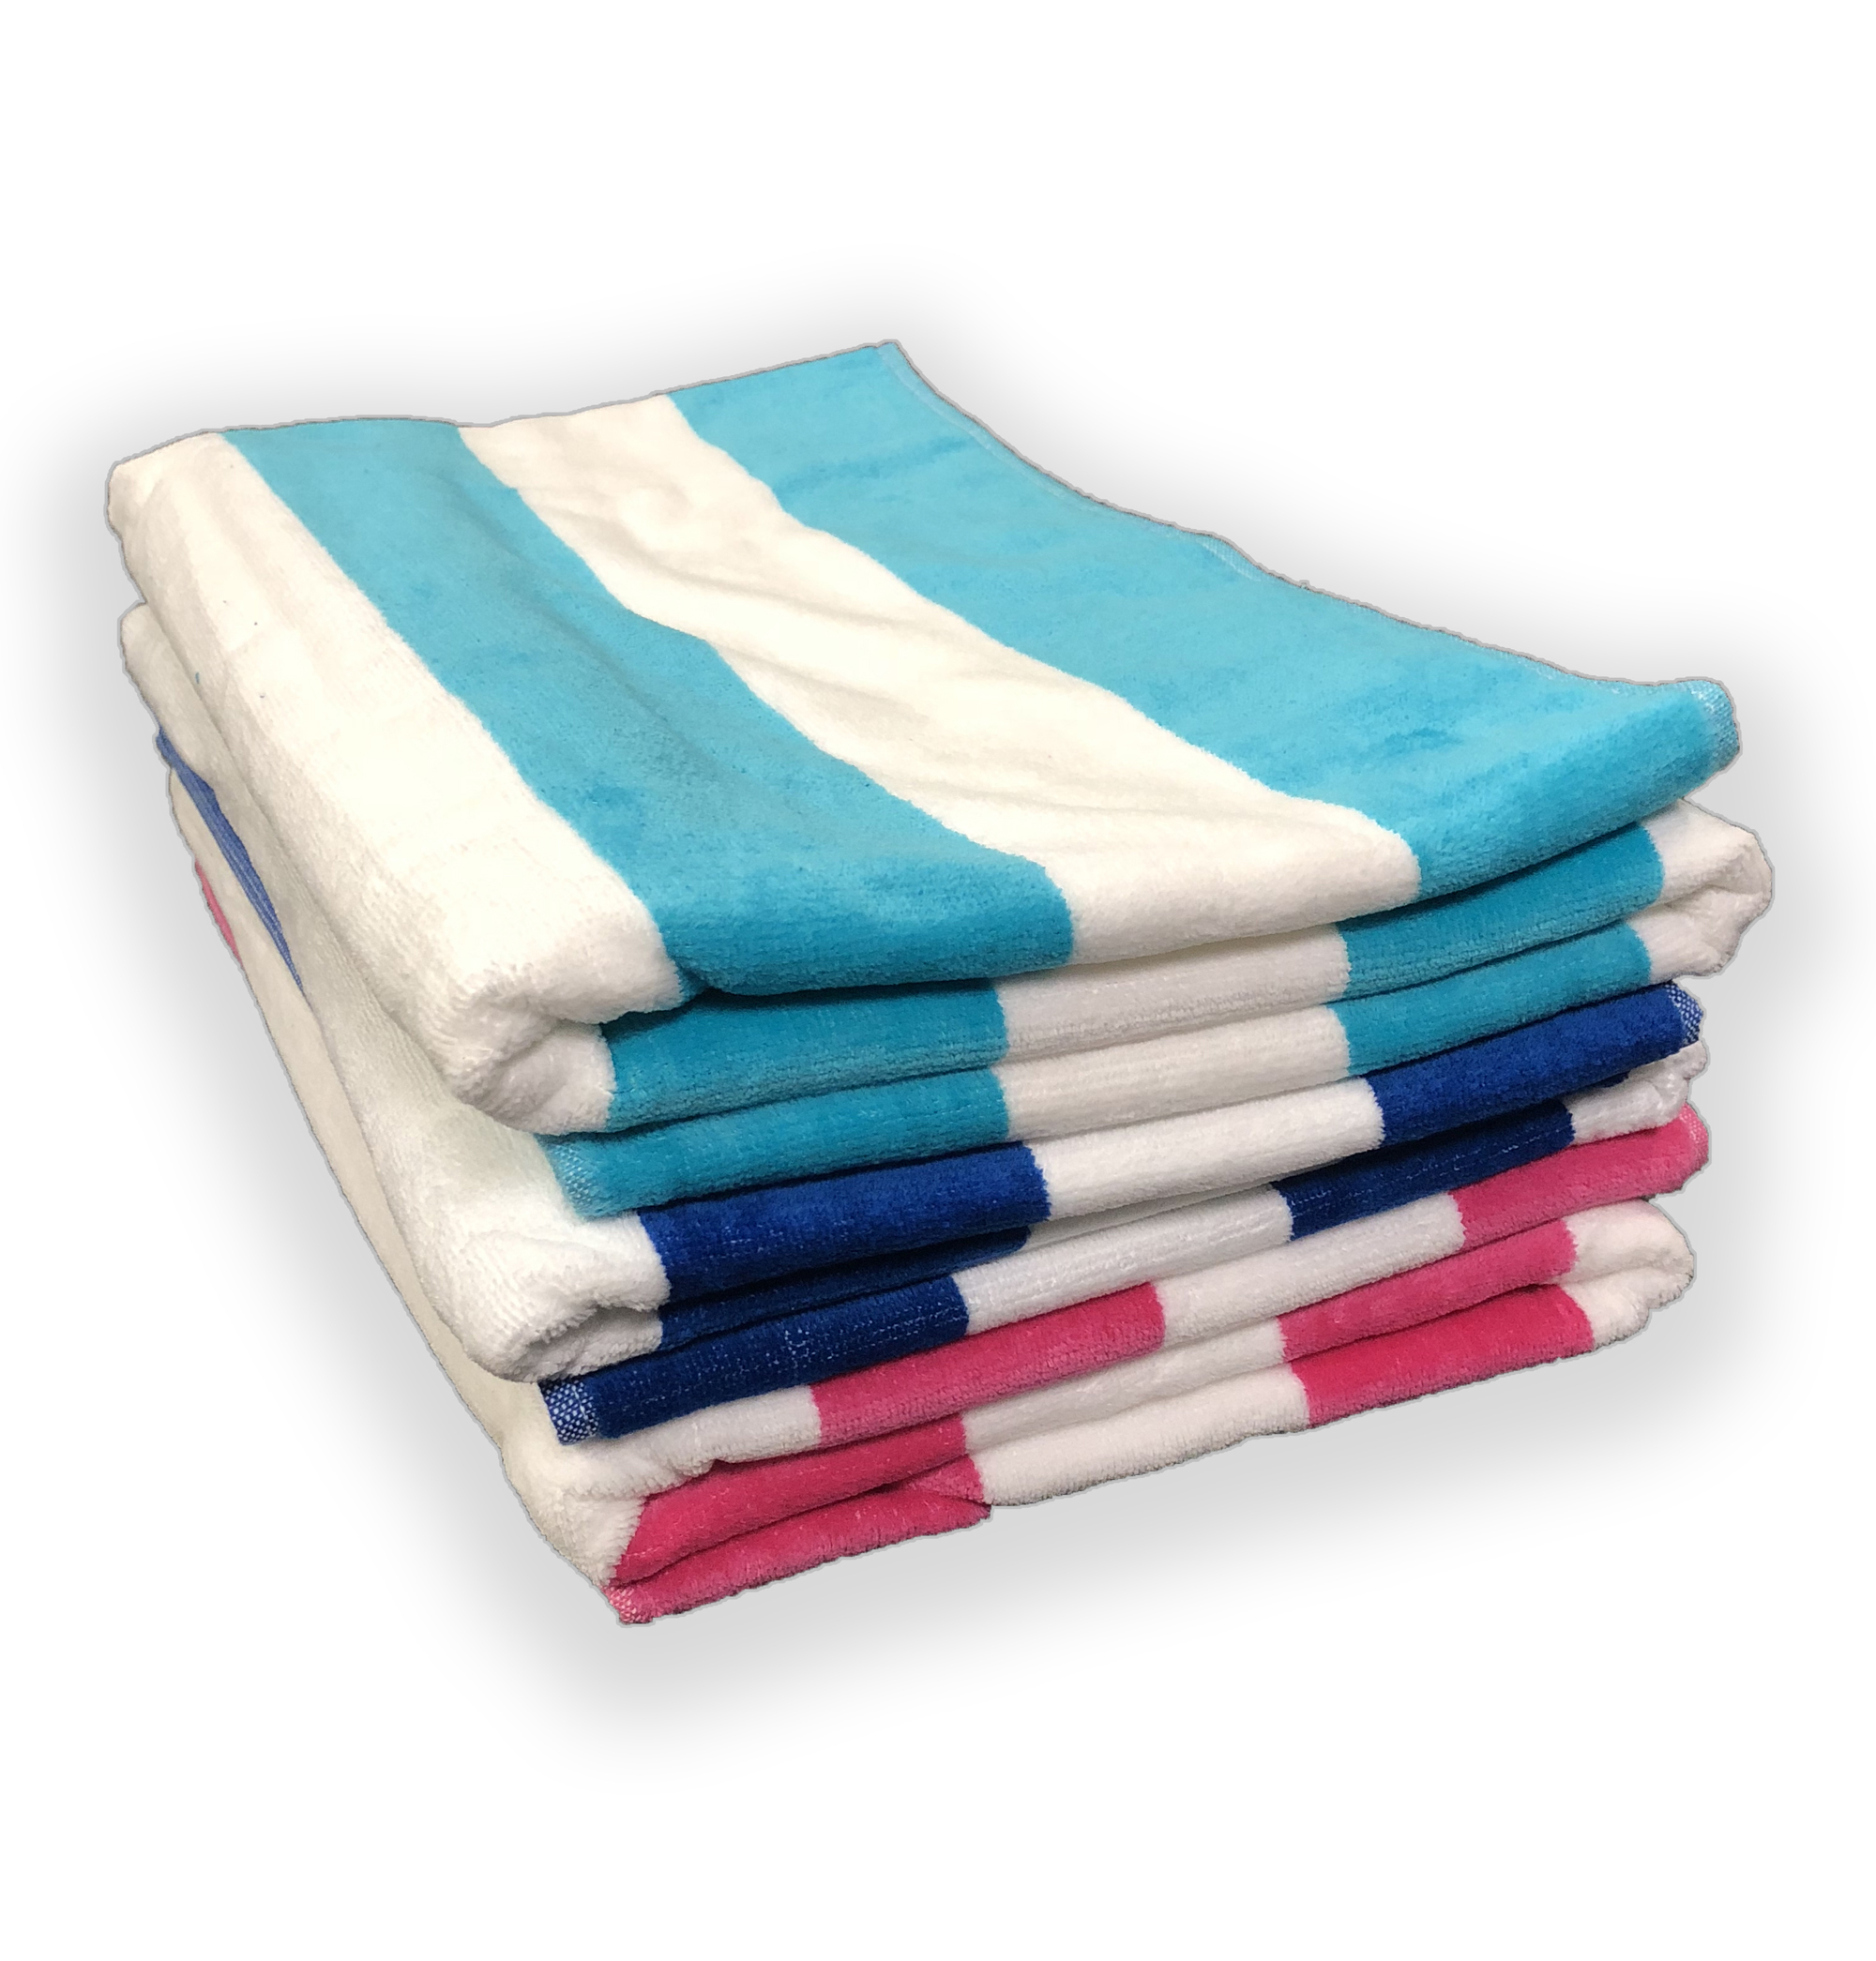 SILKSCREEN  35x70 Terry Beach Towels Cotton Velour Cabana Stripe 18.75 Lbs per Dz. 100% Cotton.